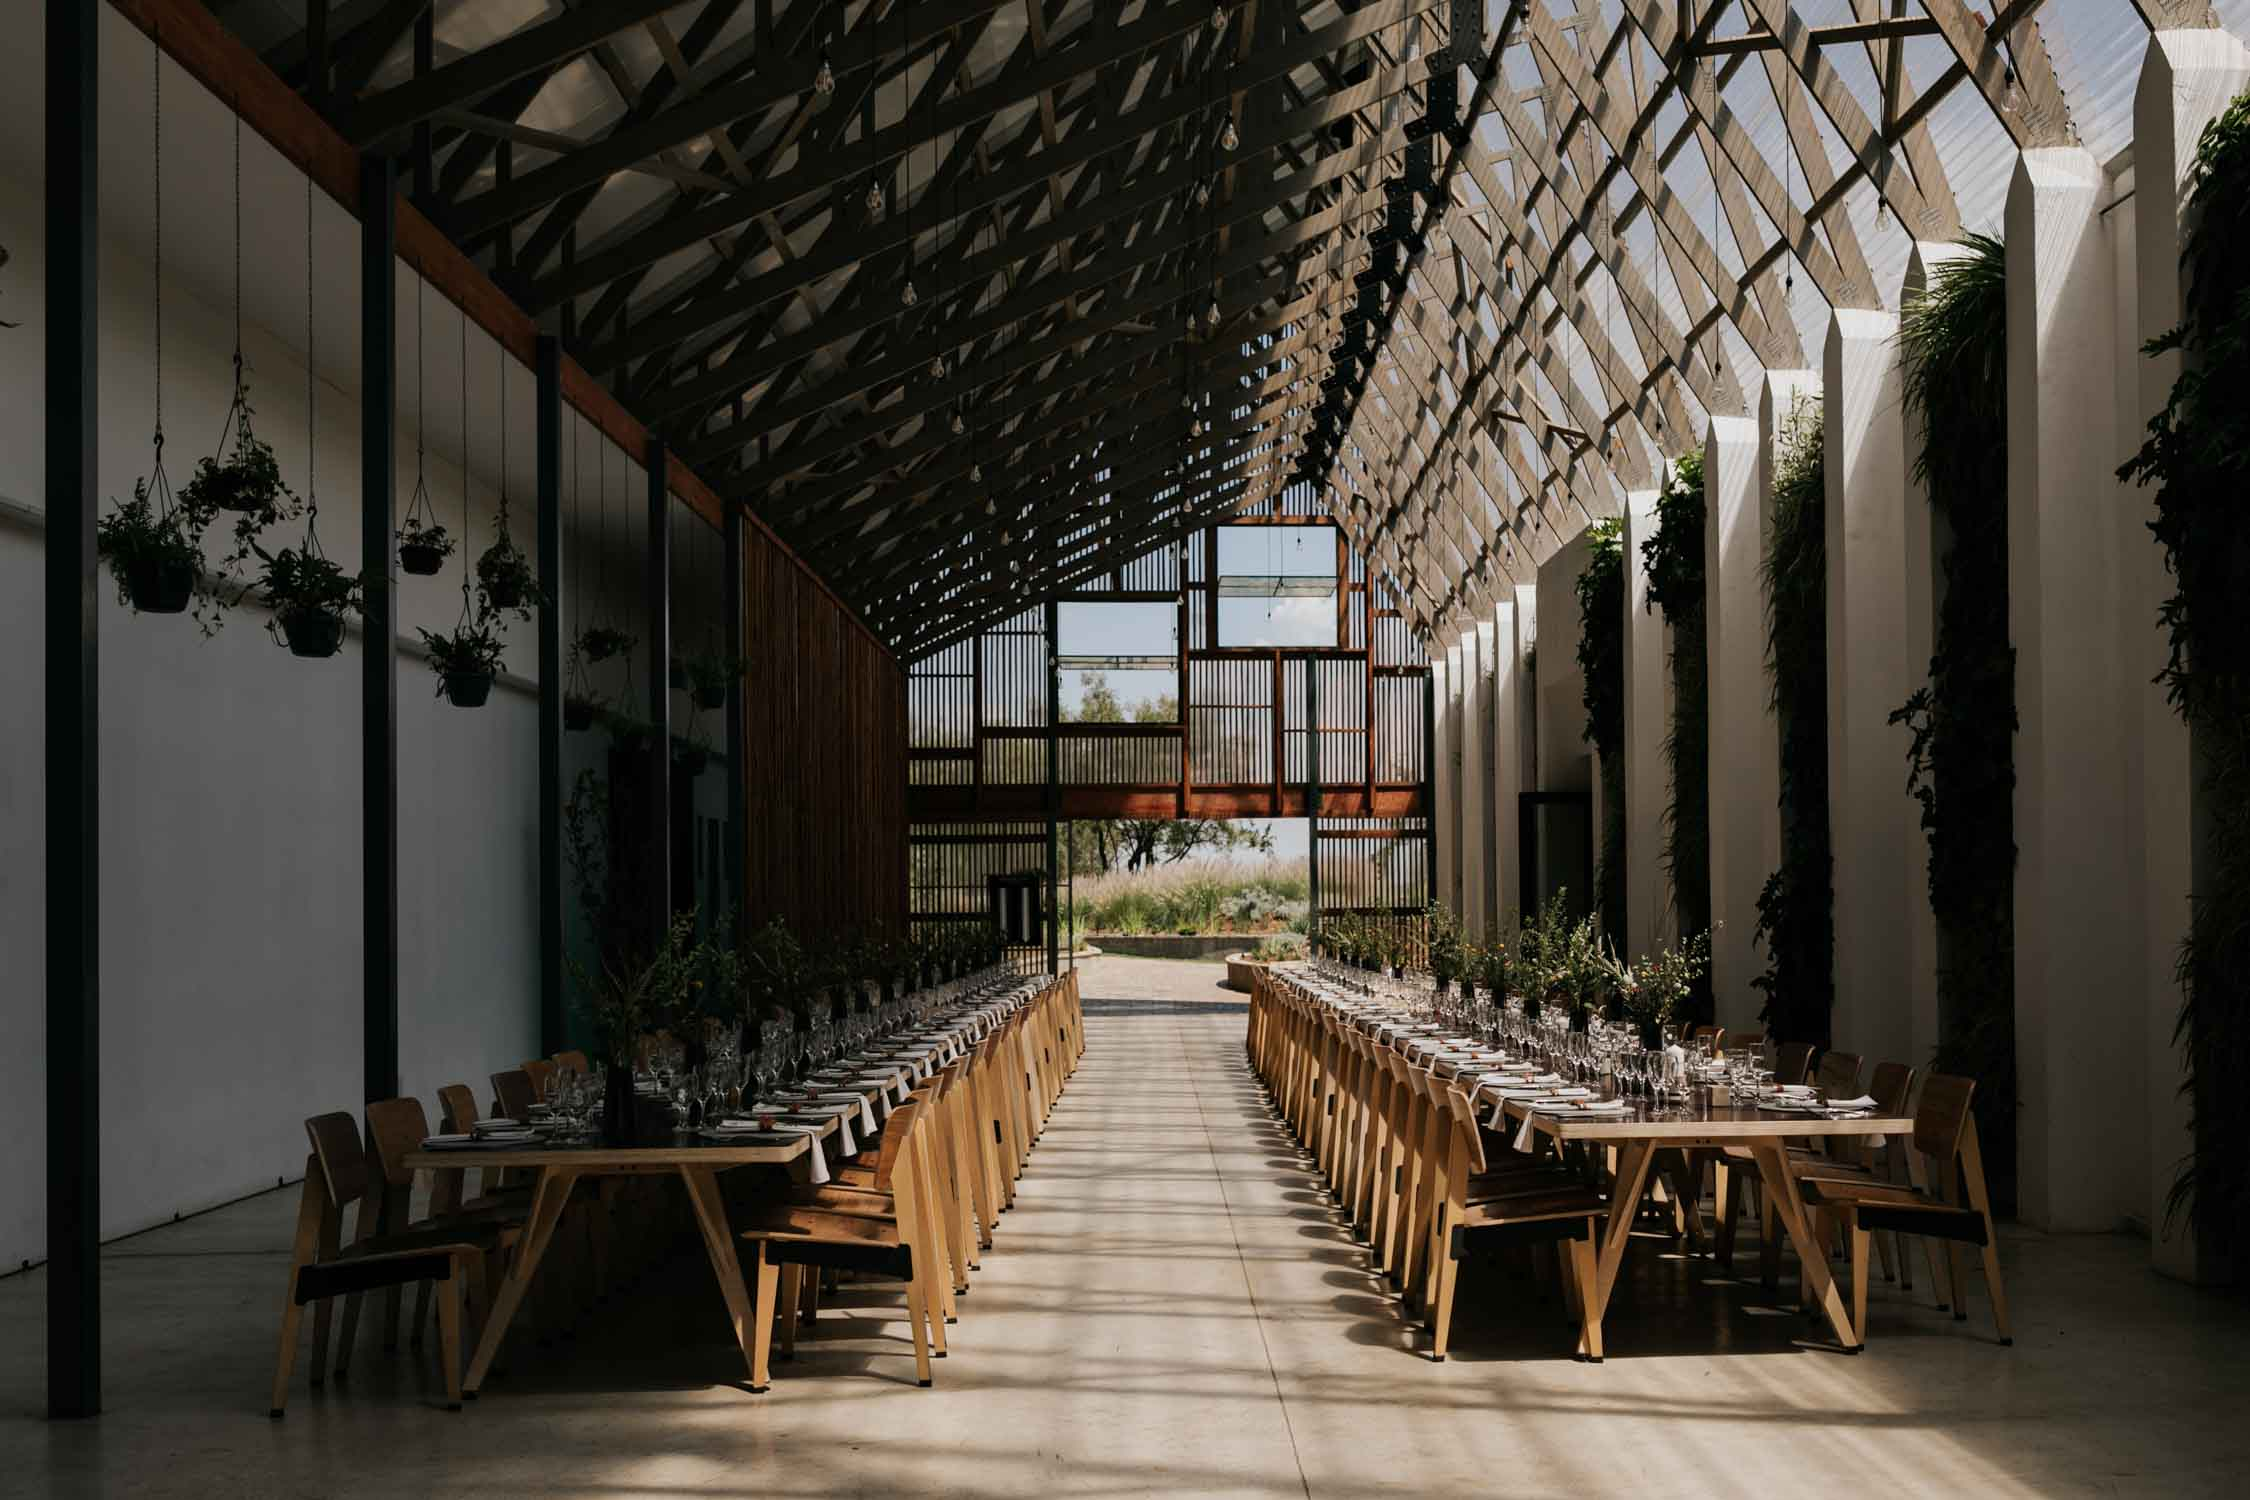 Long tables with industrial wedding decor set for wedding ceremony at Greenhouse Cafe